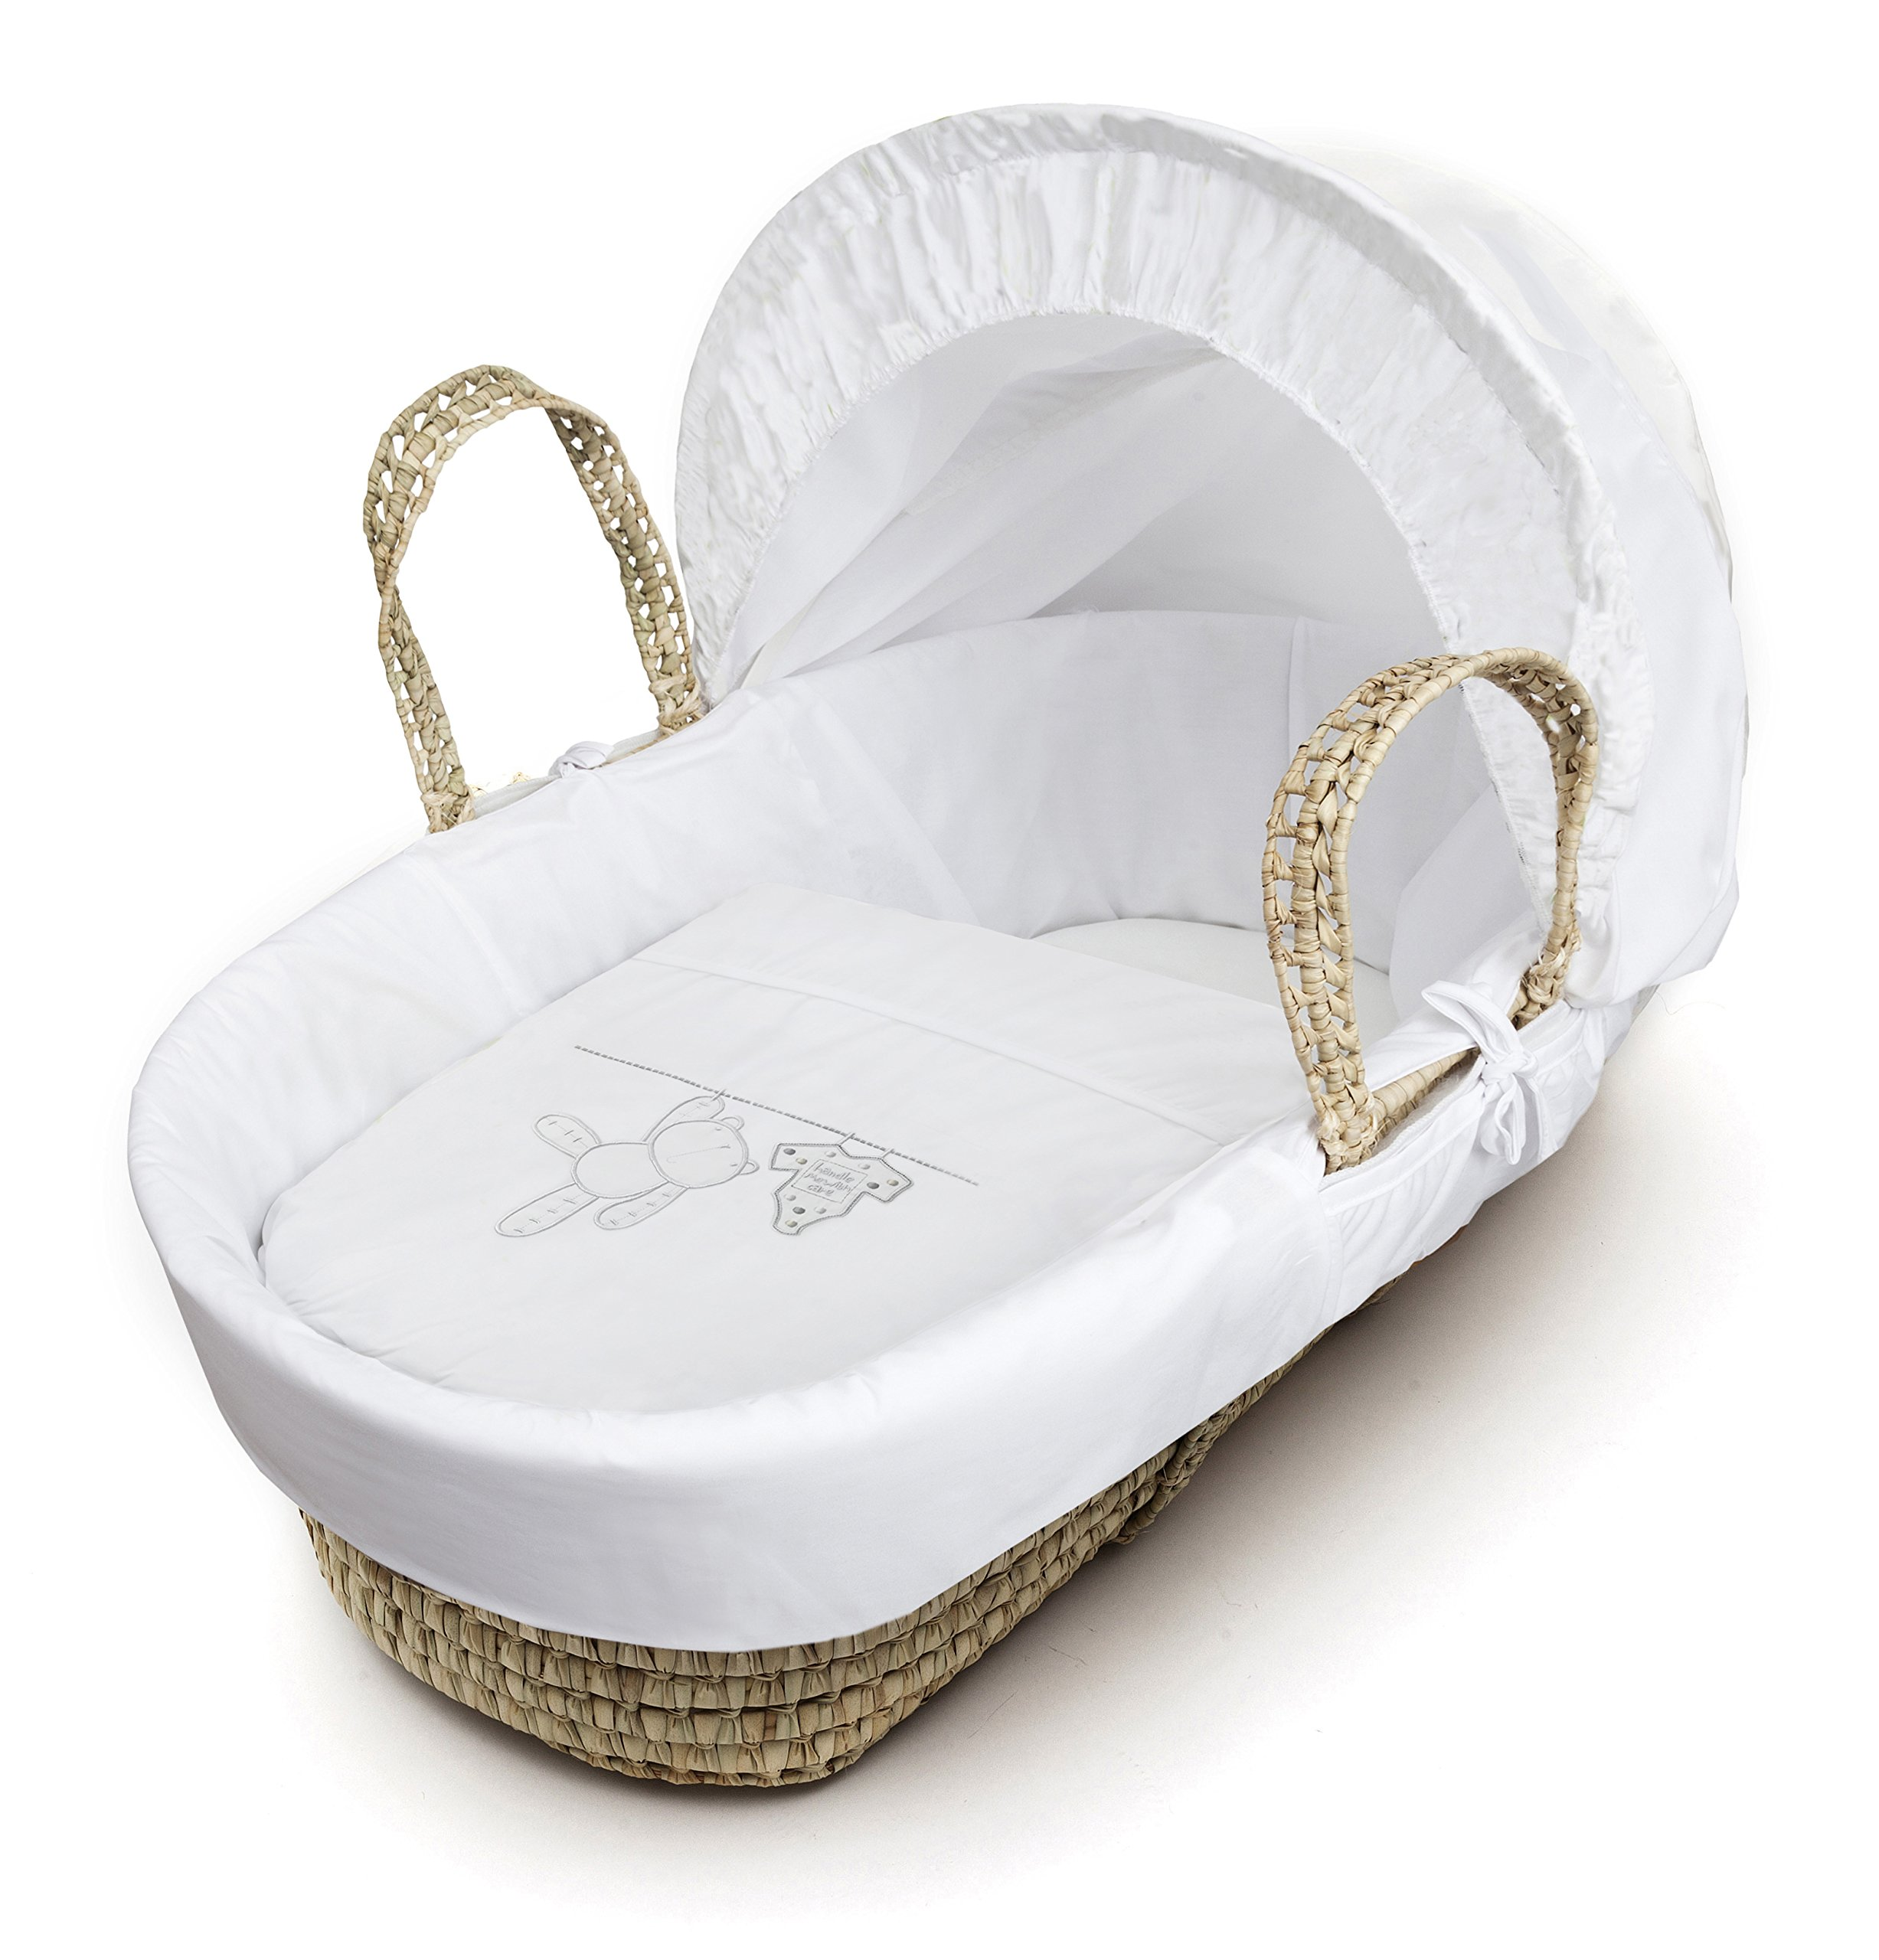 White Teddy Wash Day On Palm Moses Basket & Deluxe Dove Grey Rocking Stand Elegant Baby Suitable from newborn for up to 9kg, this Moses Basket uses Easy-care Poly Cotton with a soft padding surround Suitable from newborn to 9 months It also includes a comfortable mattress and an adjustable hood perfect to create a cosy sleeping space for your precious little one 2